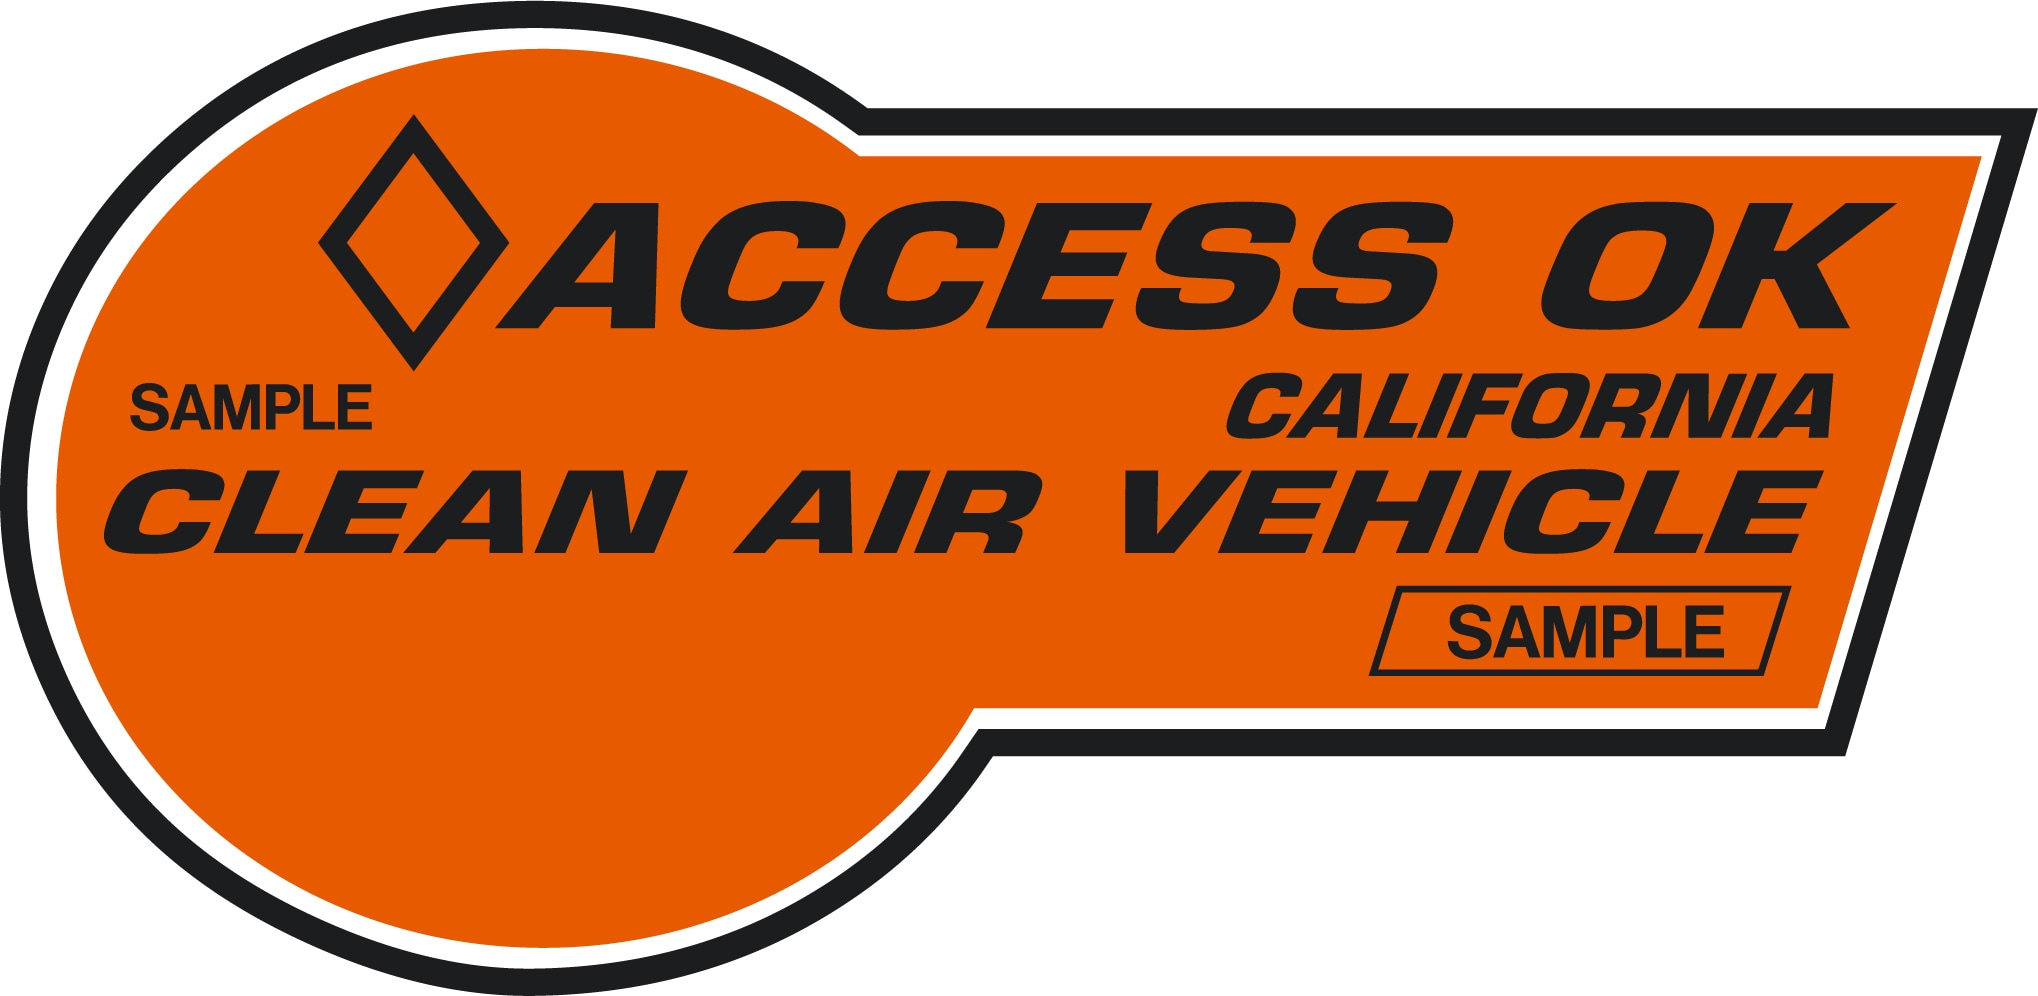 An example of a HOV-lane access sticker available to eligible 2020 Crosstrek Hybrid owners in certain states.